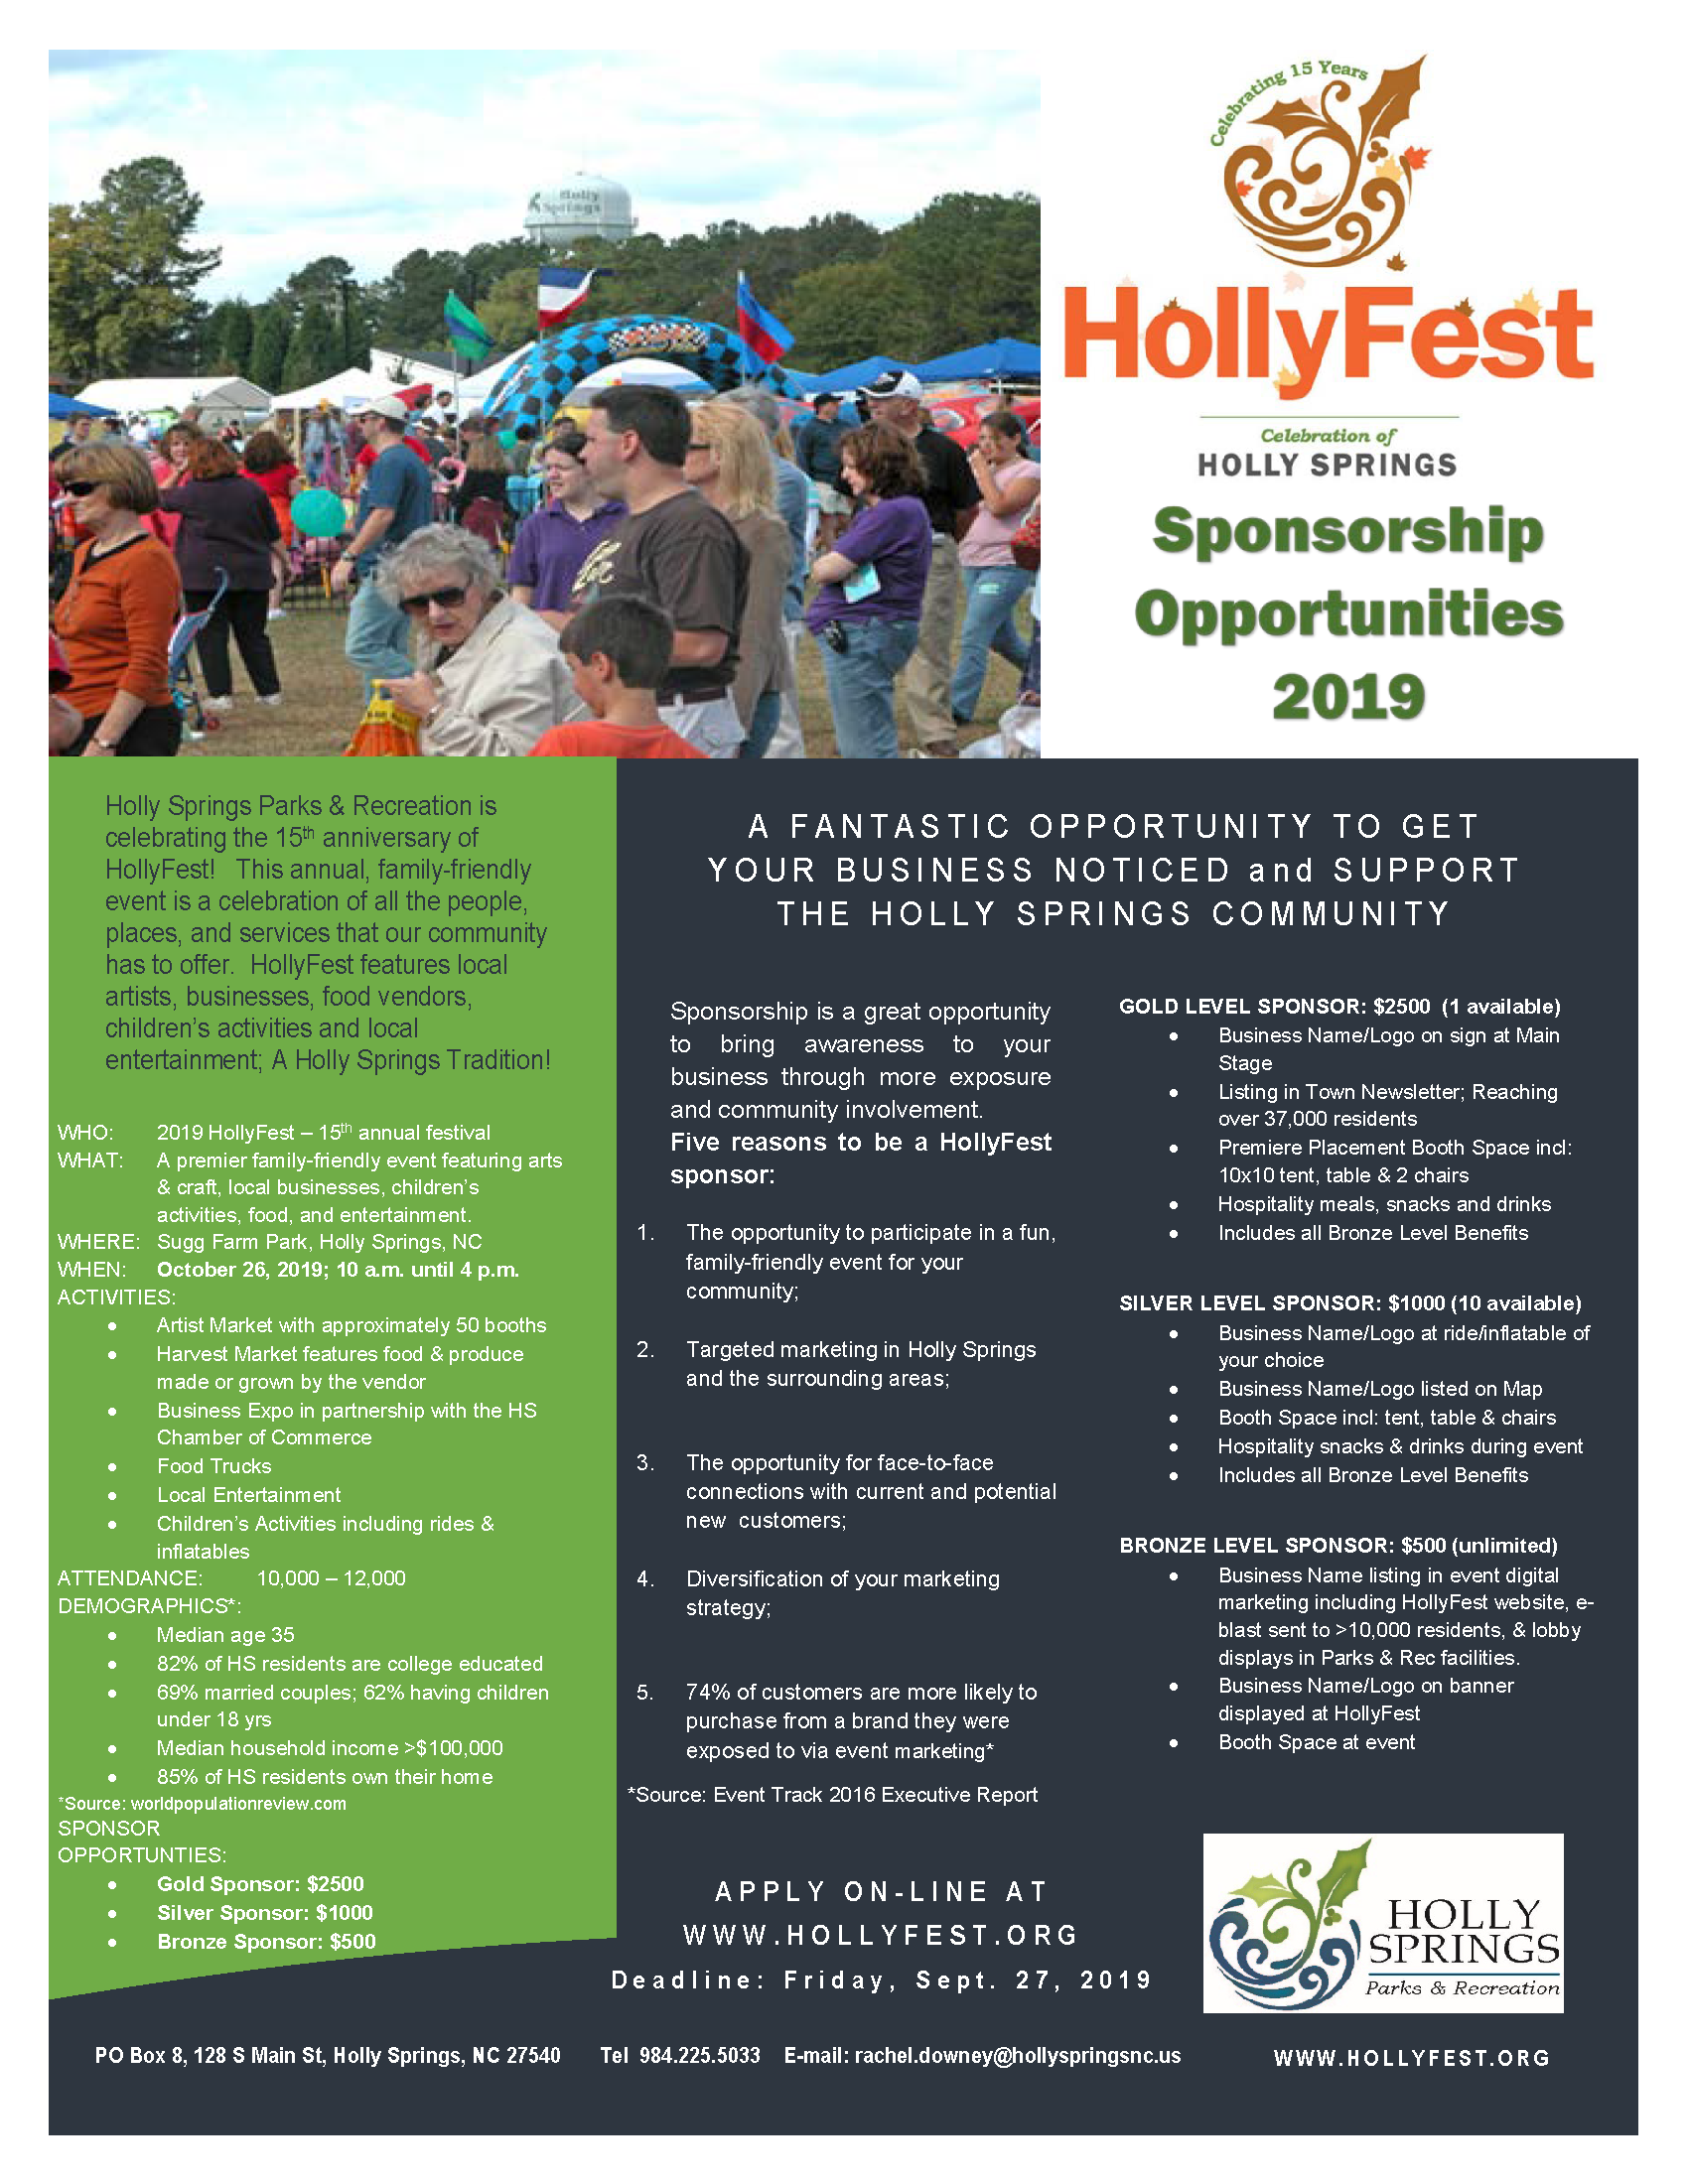 HollyFest 2019 Sponsorship